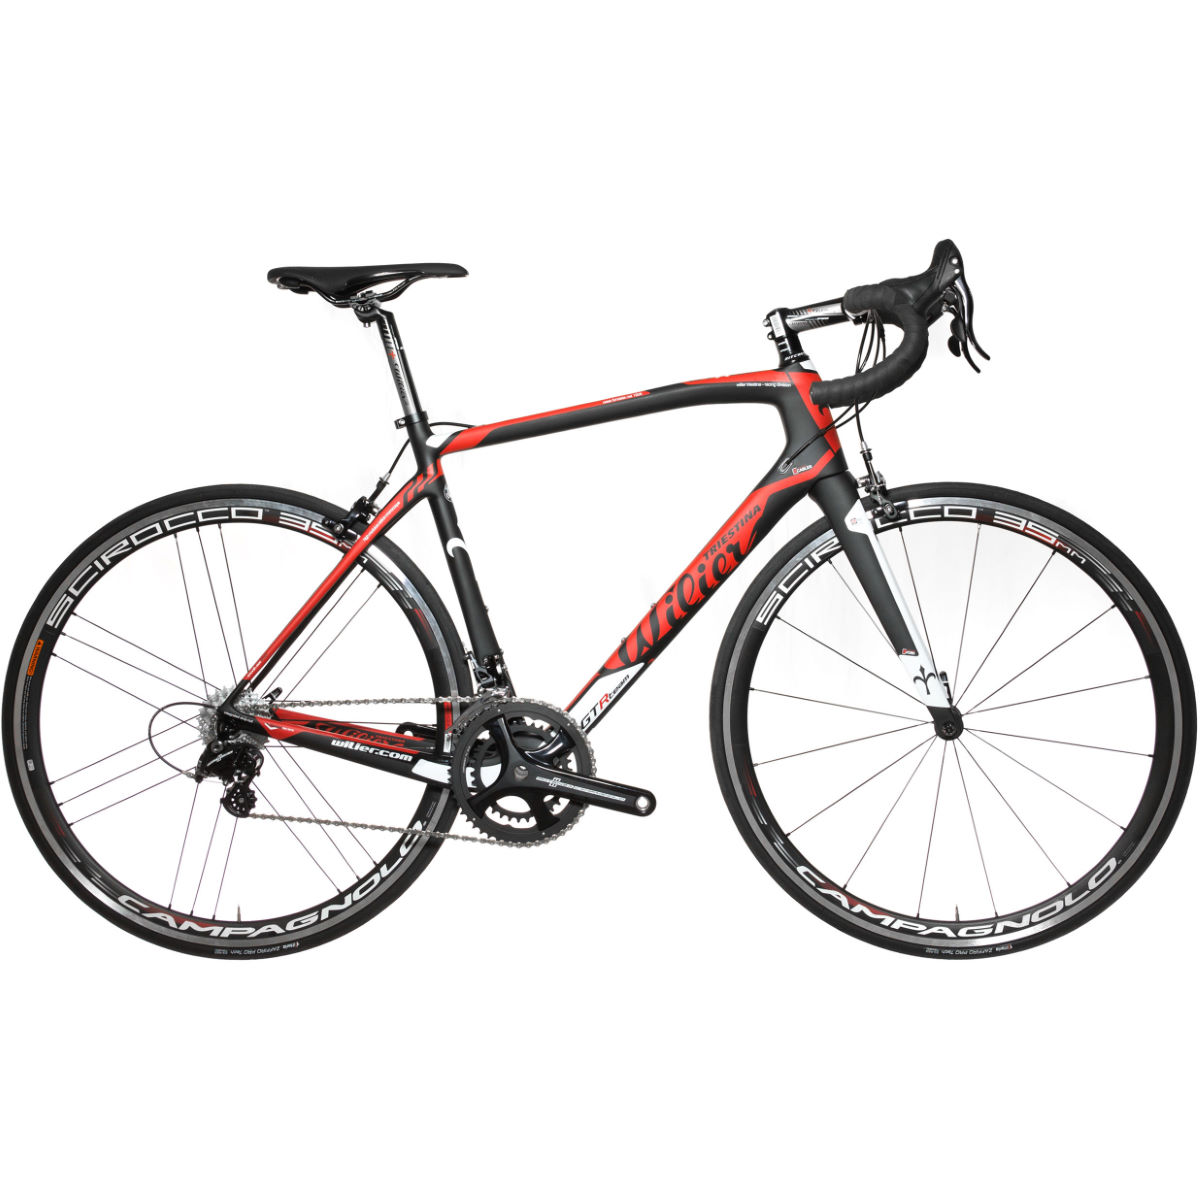 Vélo de route Wilier GTR Team Endurance (Potenza, 2017) - X Large Stock Bike Rouge Vélos de route